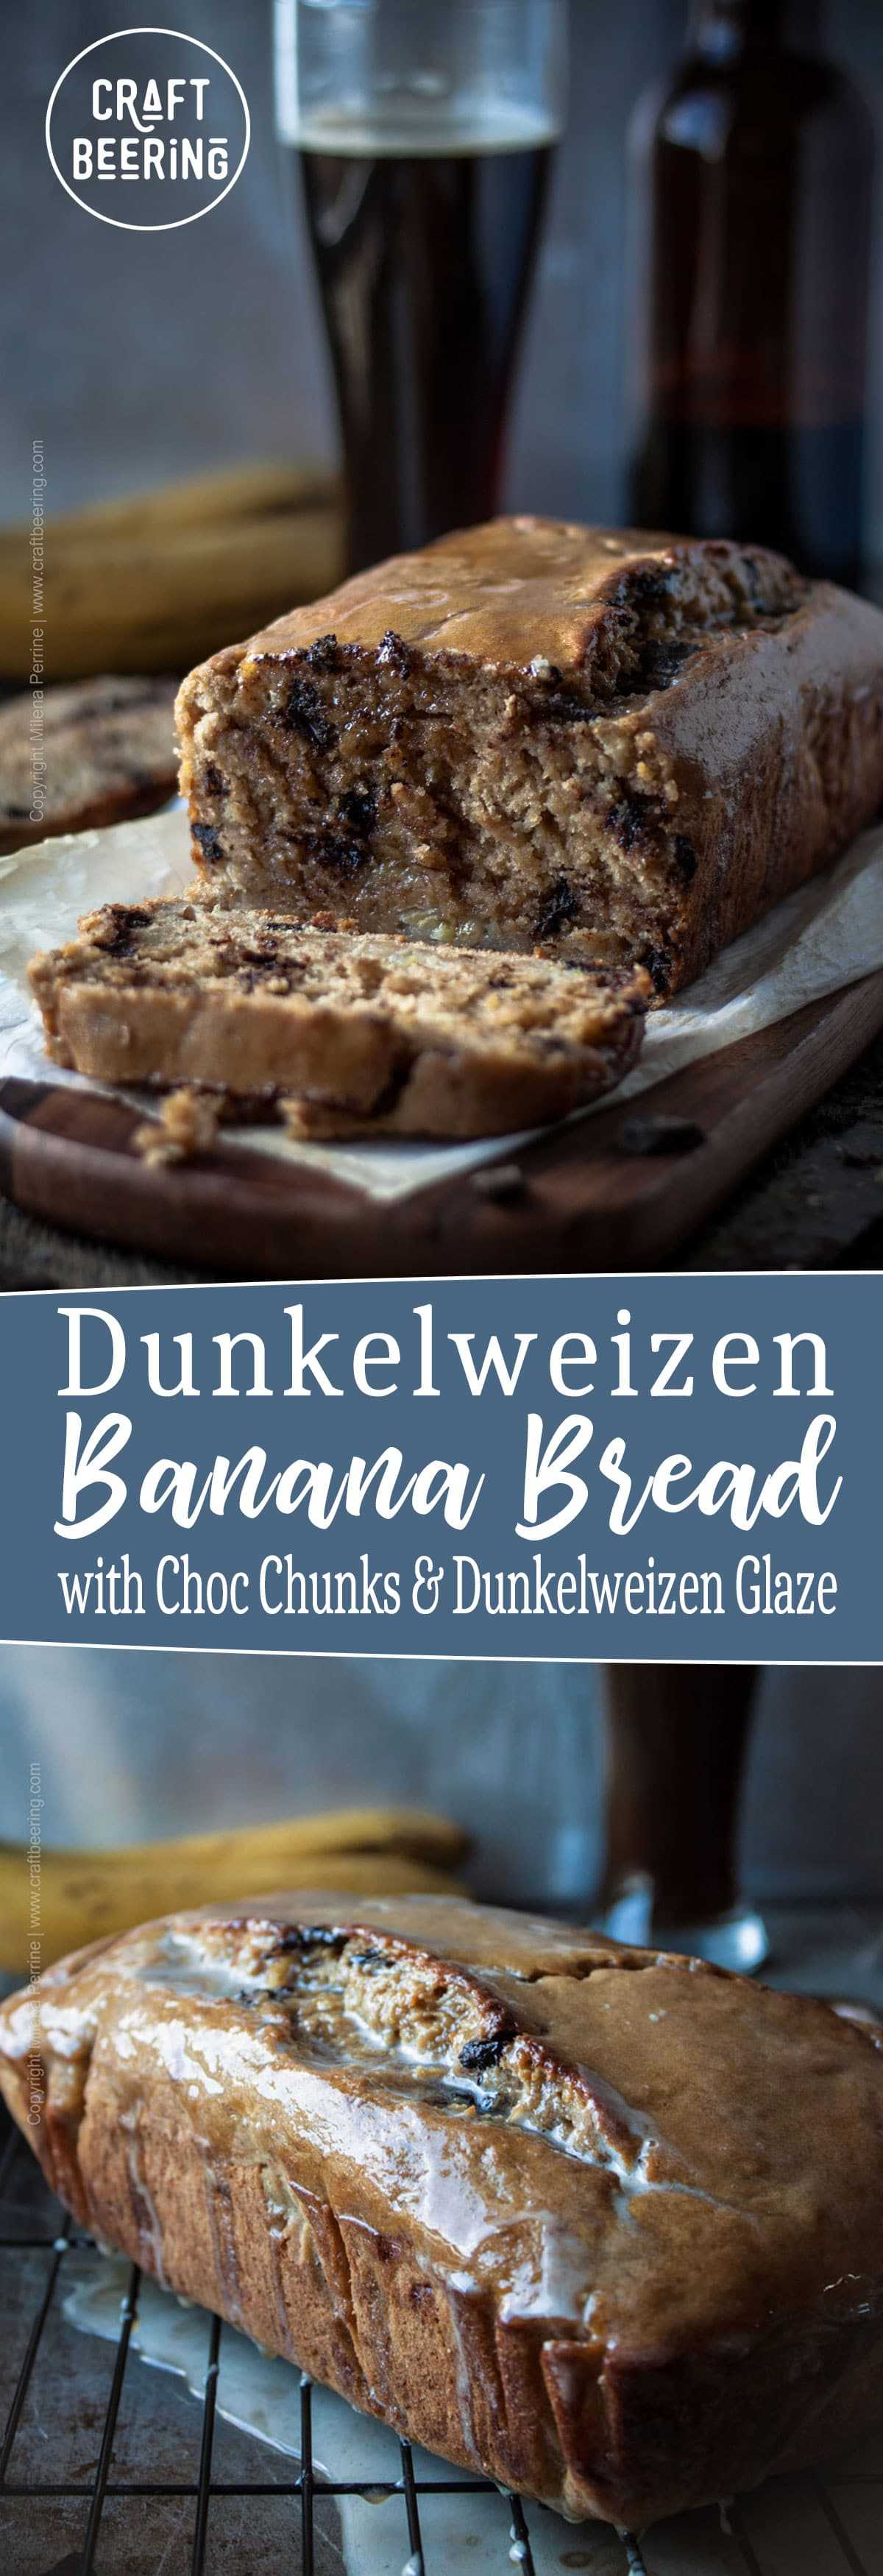 Beer Banana Bread Dunkelweizen Beer Glaze and Choc Chips #dunkelweizen #beerbread #beerbananabread #bananabread #beerglaze #dunkelweizenglaze